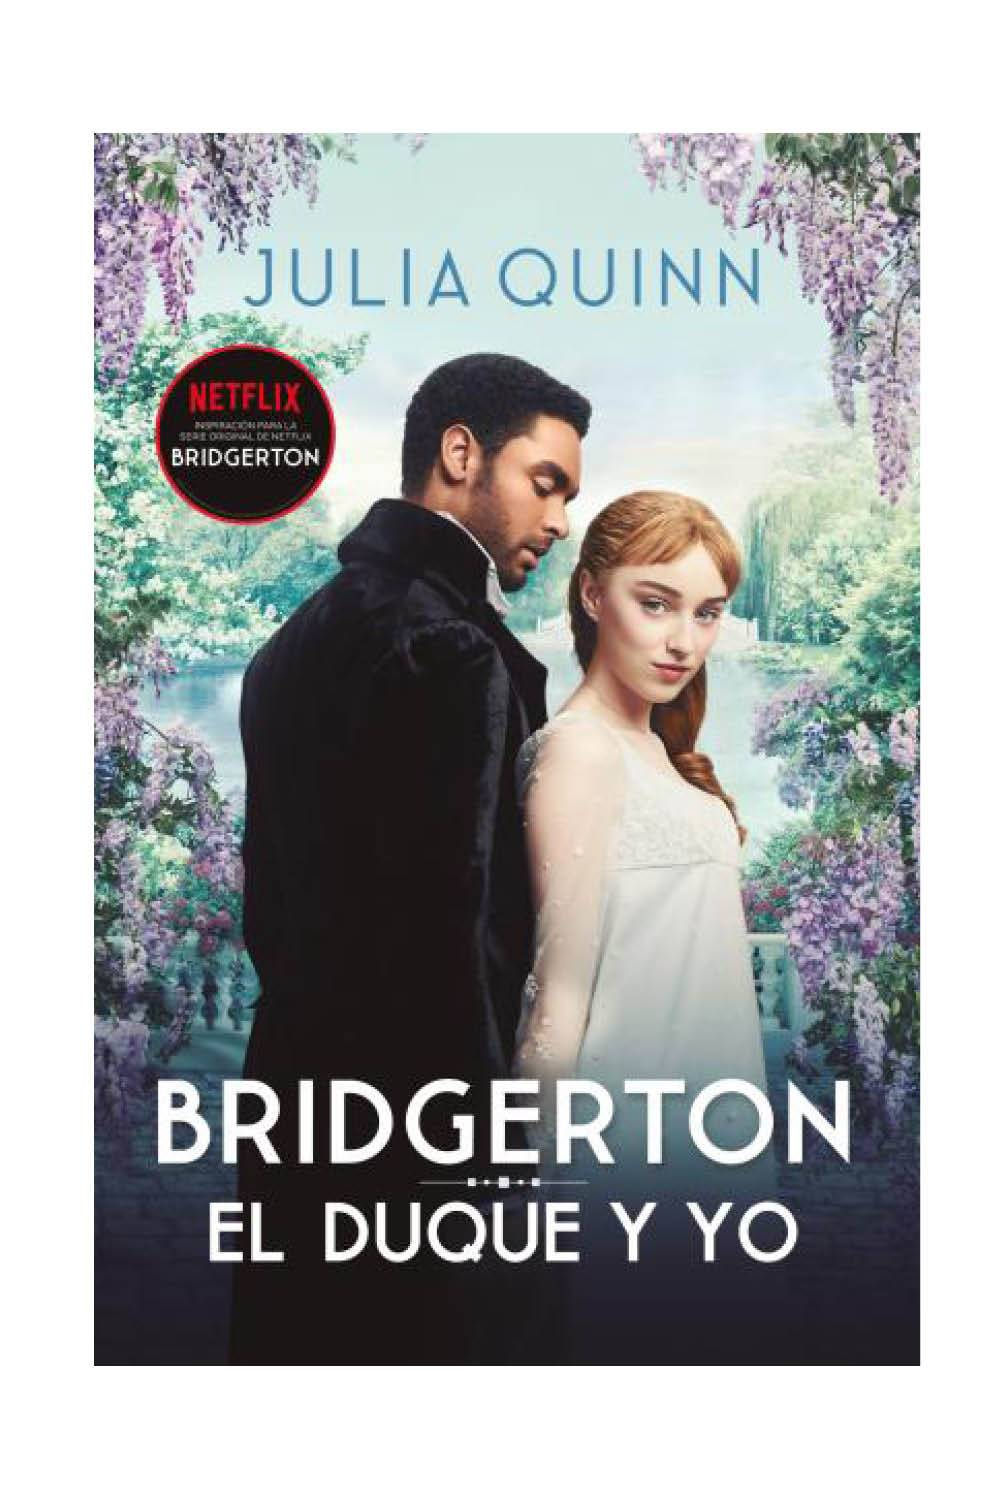 bridgerton libros romanticos julia quinn bridgerton el duque y yo